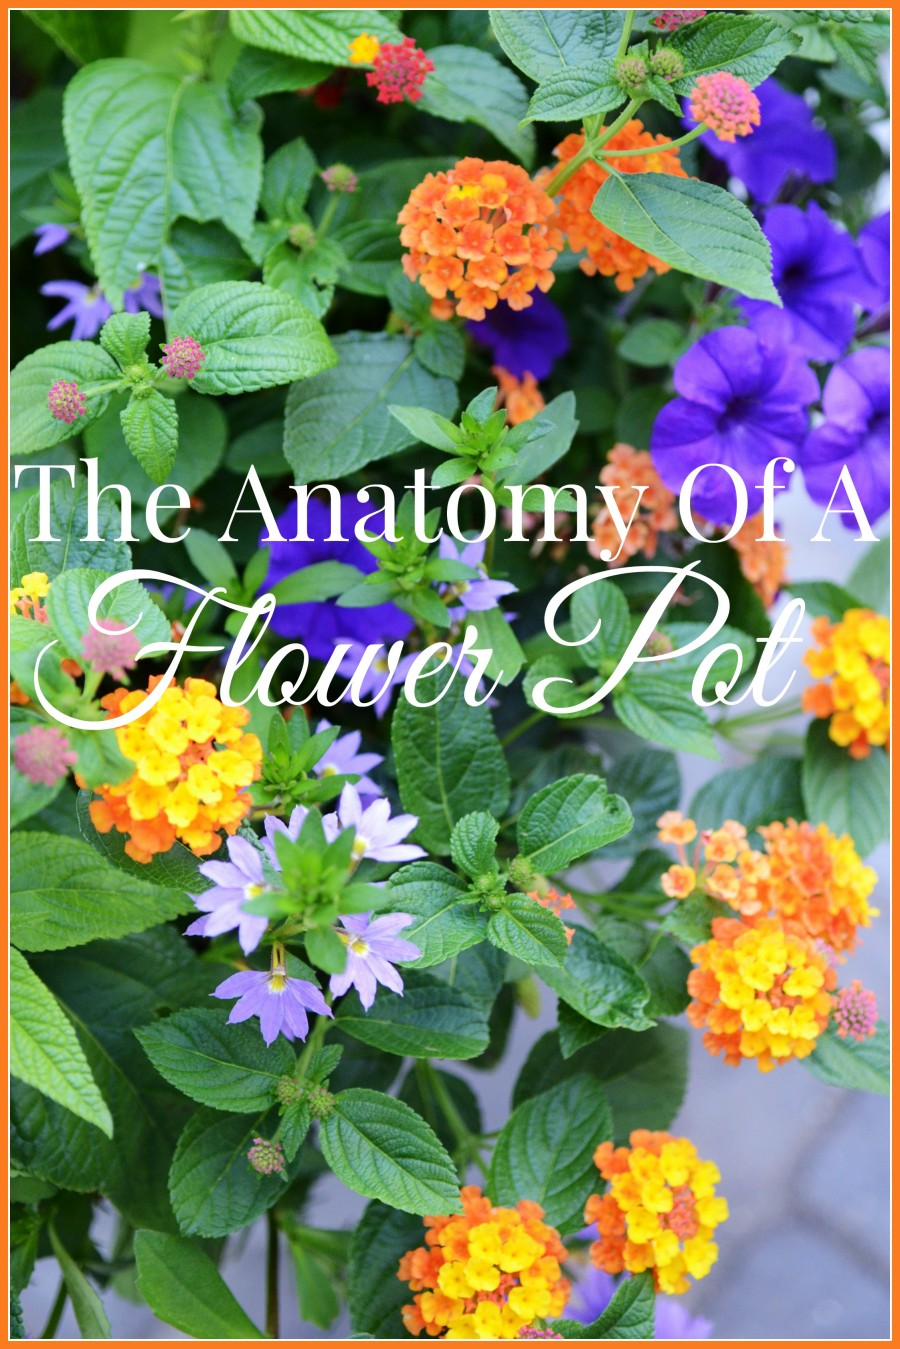 THE ANATOMY OF A FLOWER POT-HOW TO PLANT BEAUTIFUL BLOOMS TO LAST UNTIL FALL